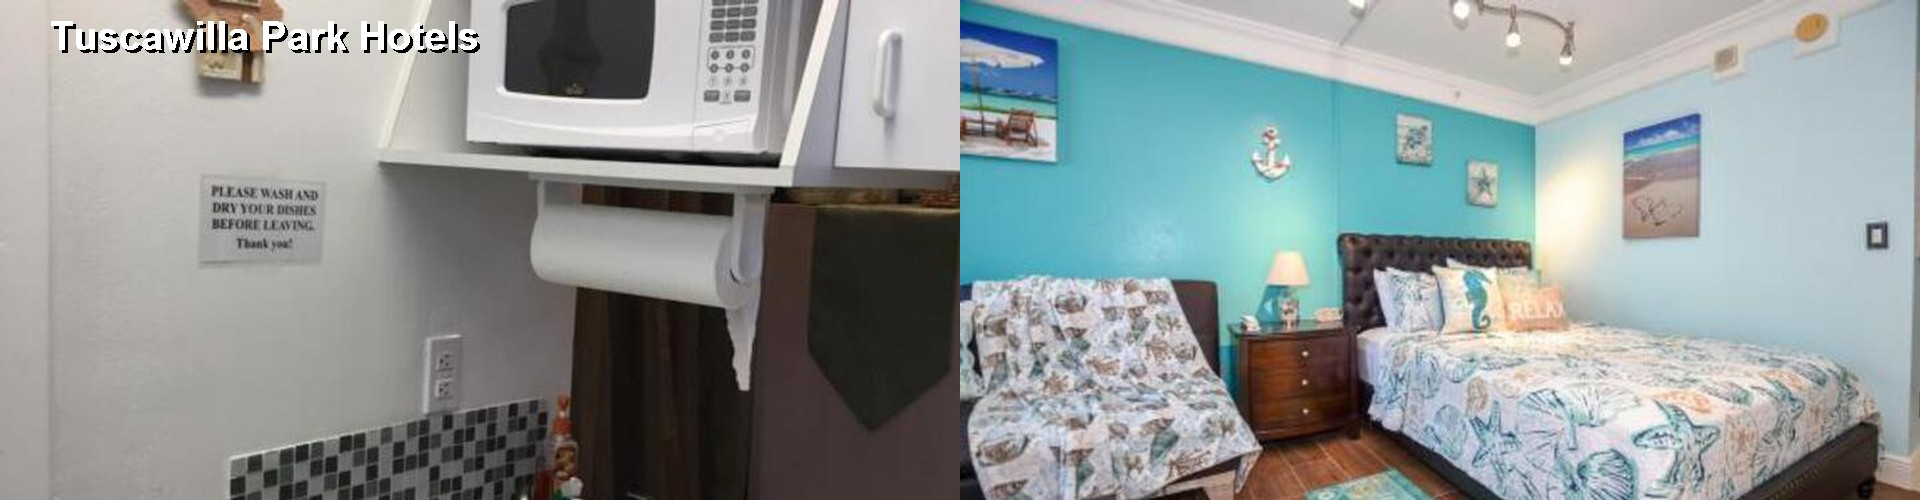 5 Best Hotels near Tuscawilla Park